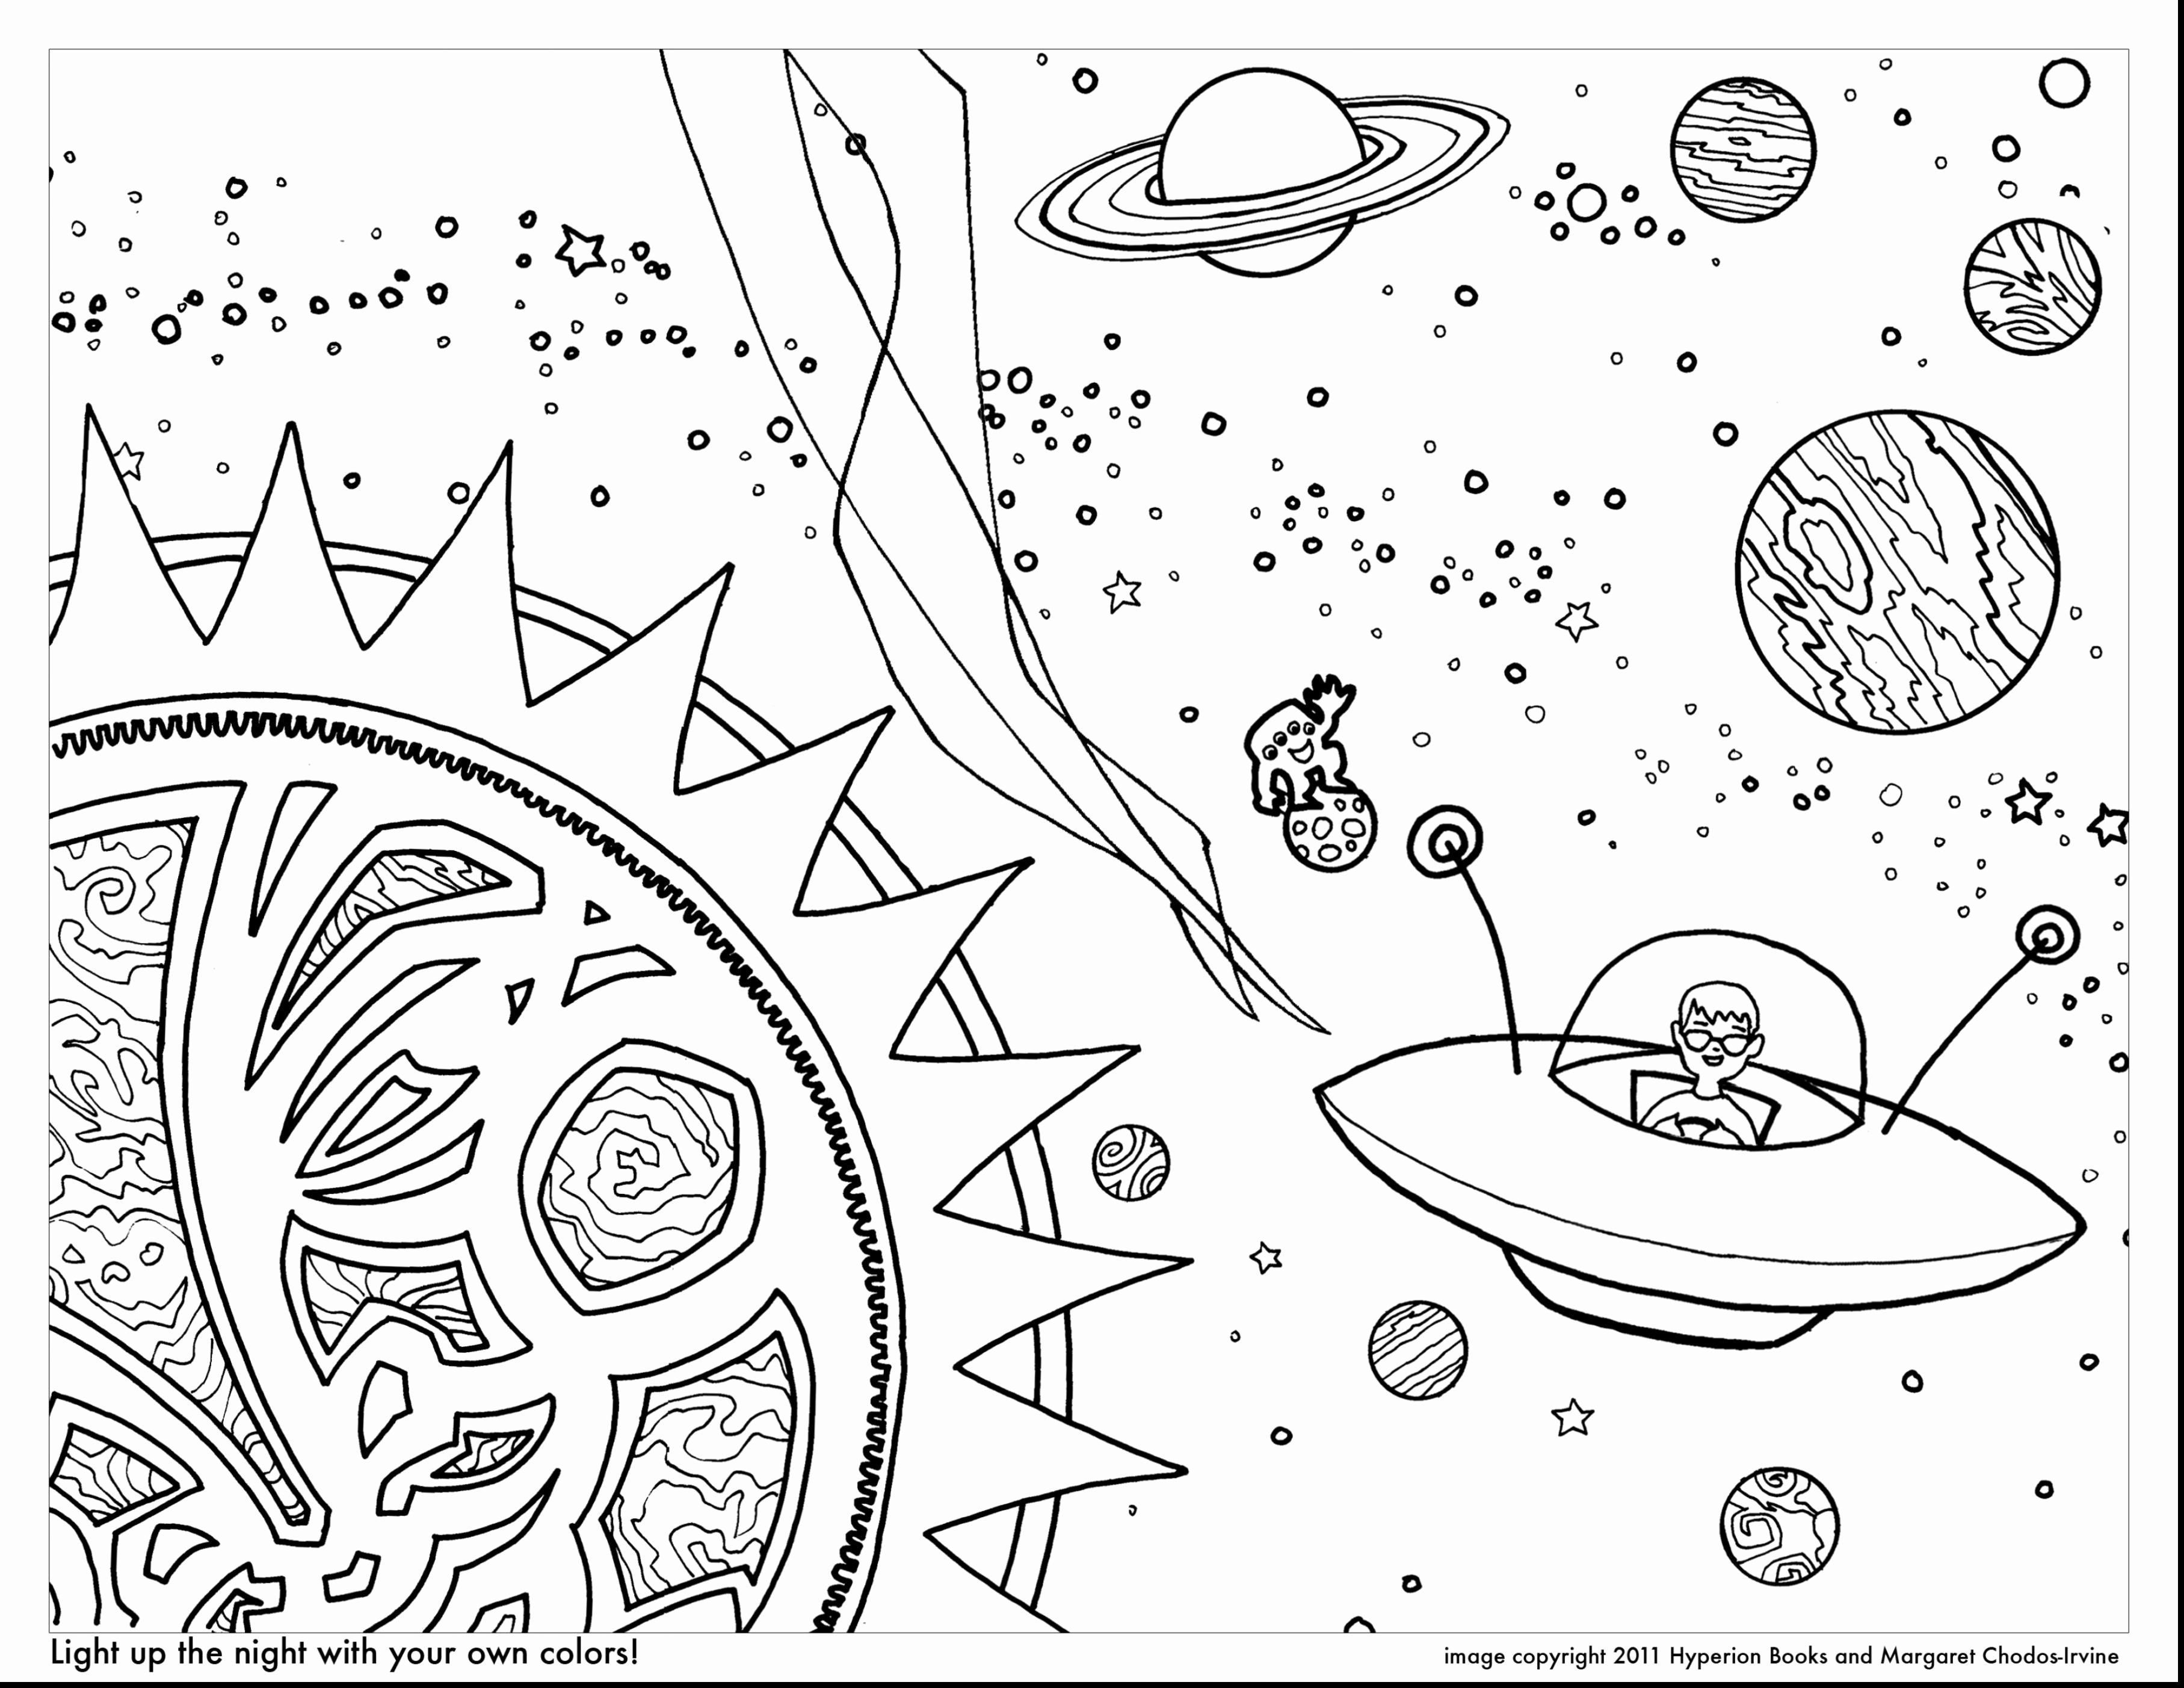 Pin By Gemma Cullen On Coloring Pages In 2020 Space Coloring Pages Planet Coloring Pages Bird Coloring Pages